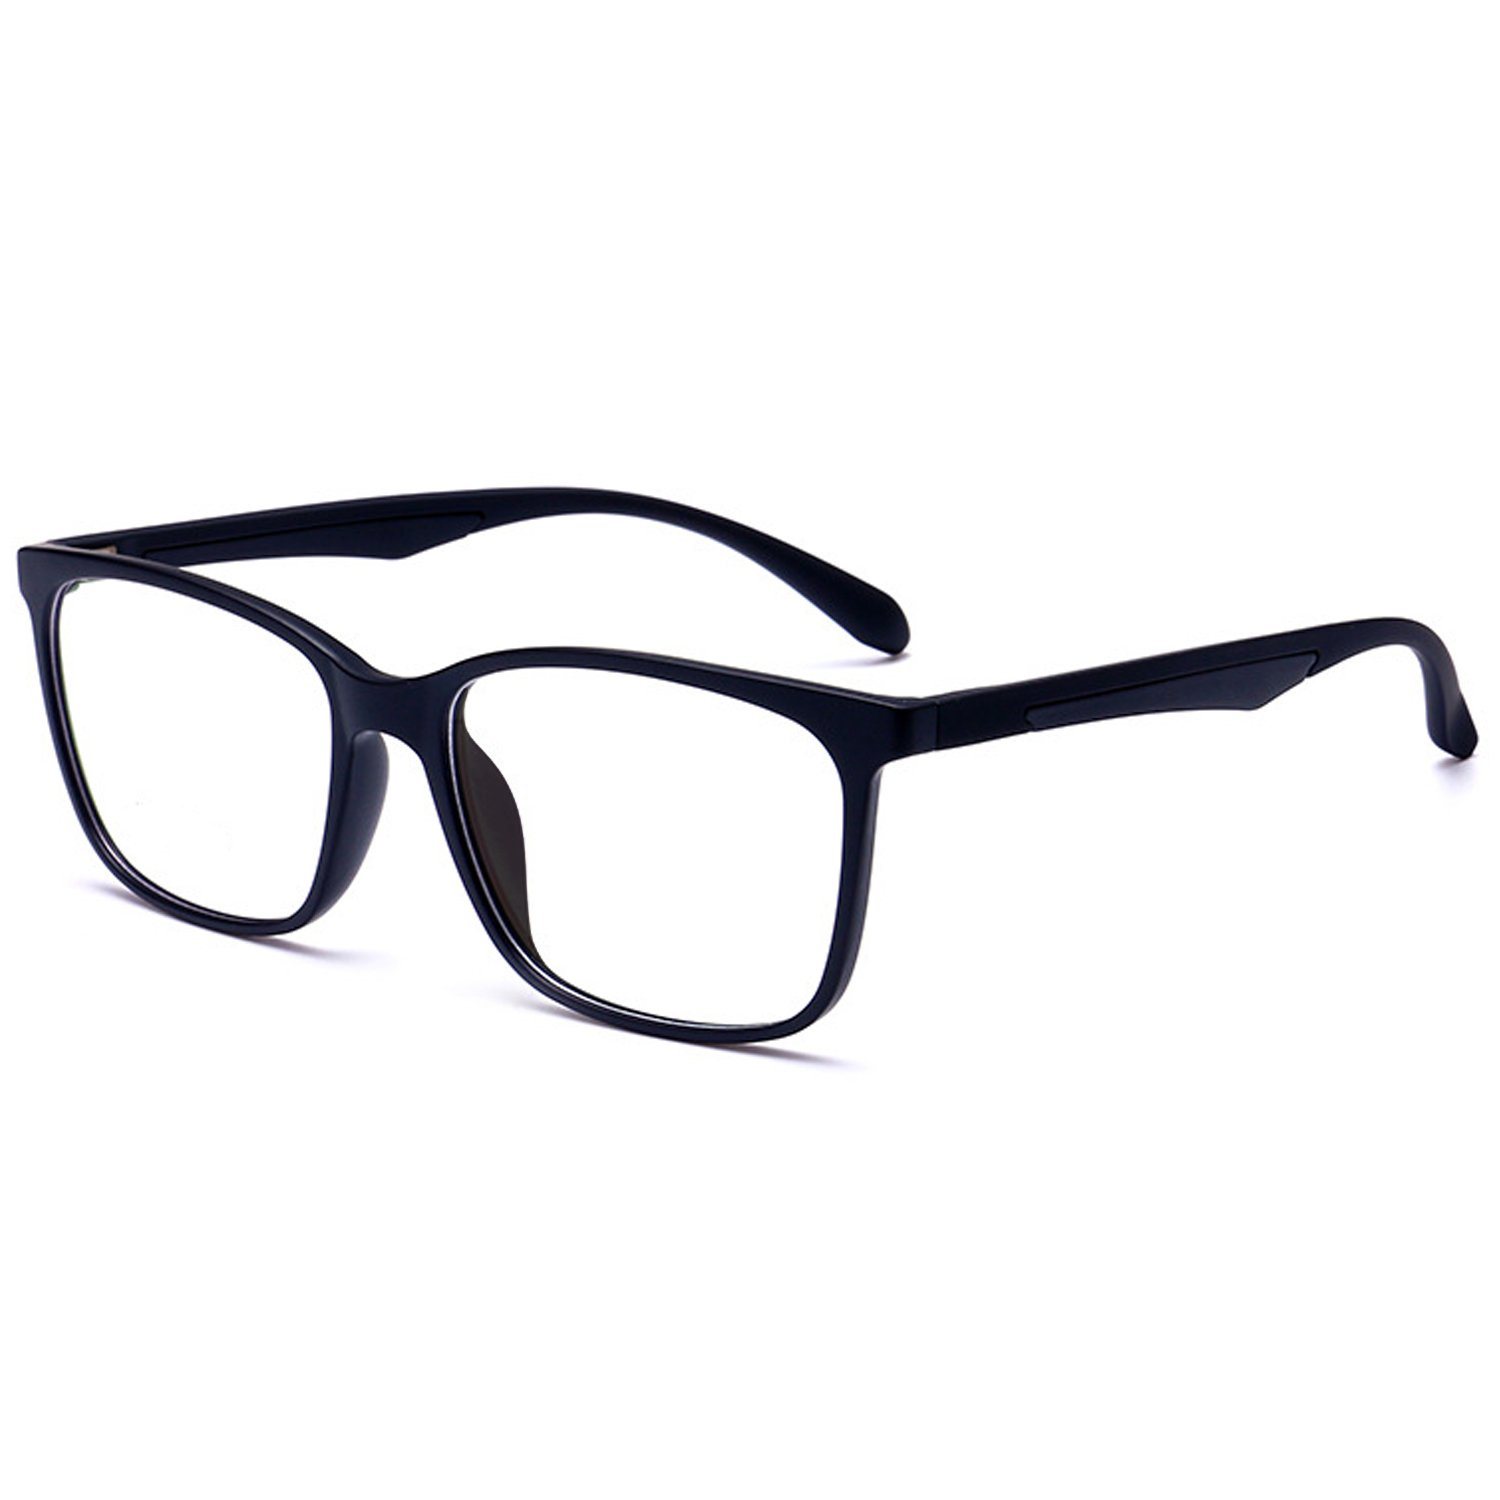 f642897c8c34 Amazon.com  ANRRI Blue Light Blocking Glasses for Computer Use